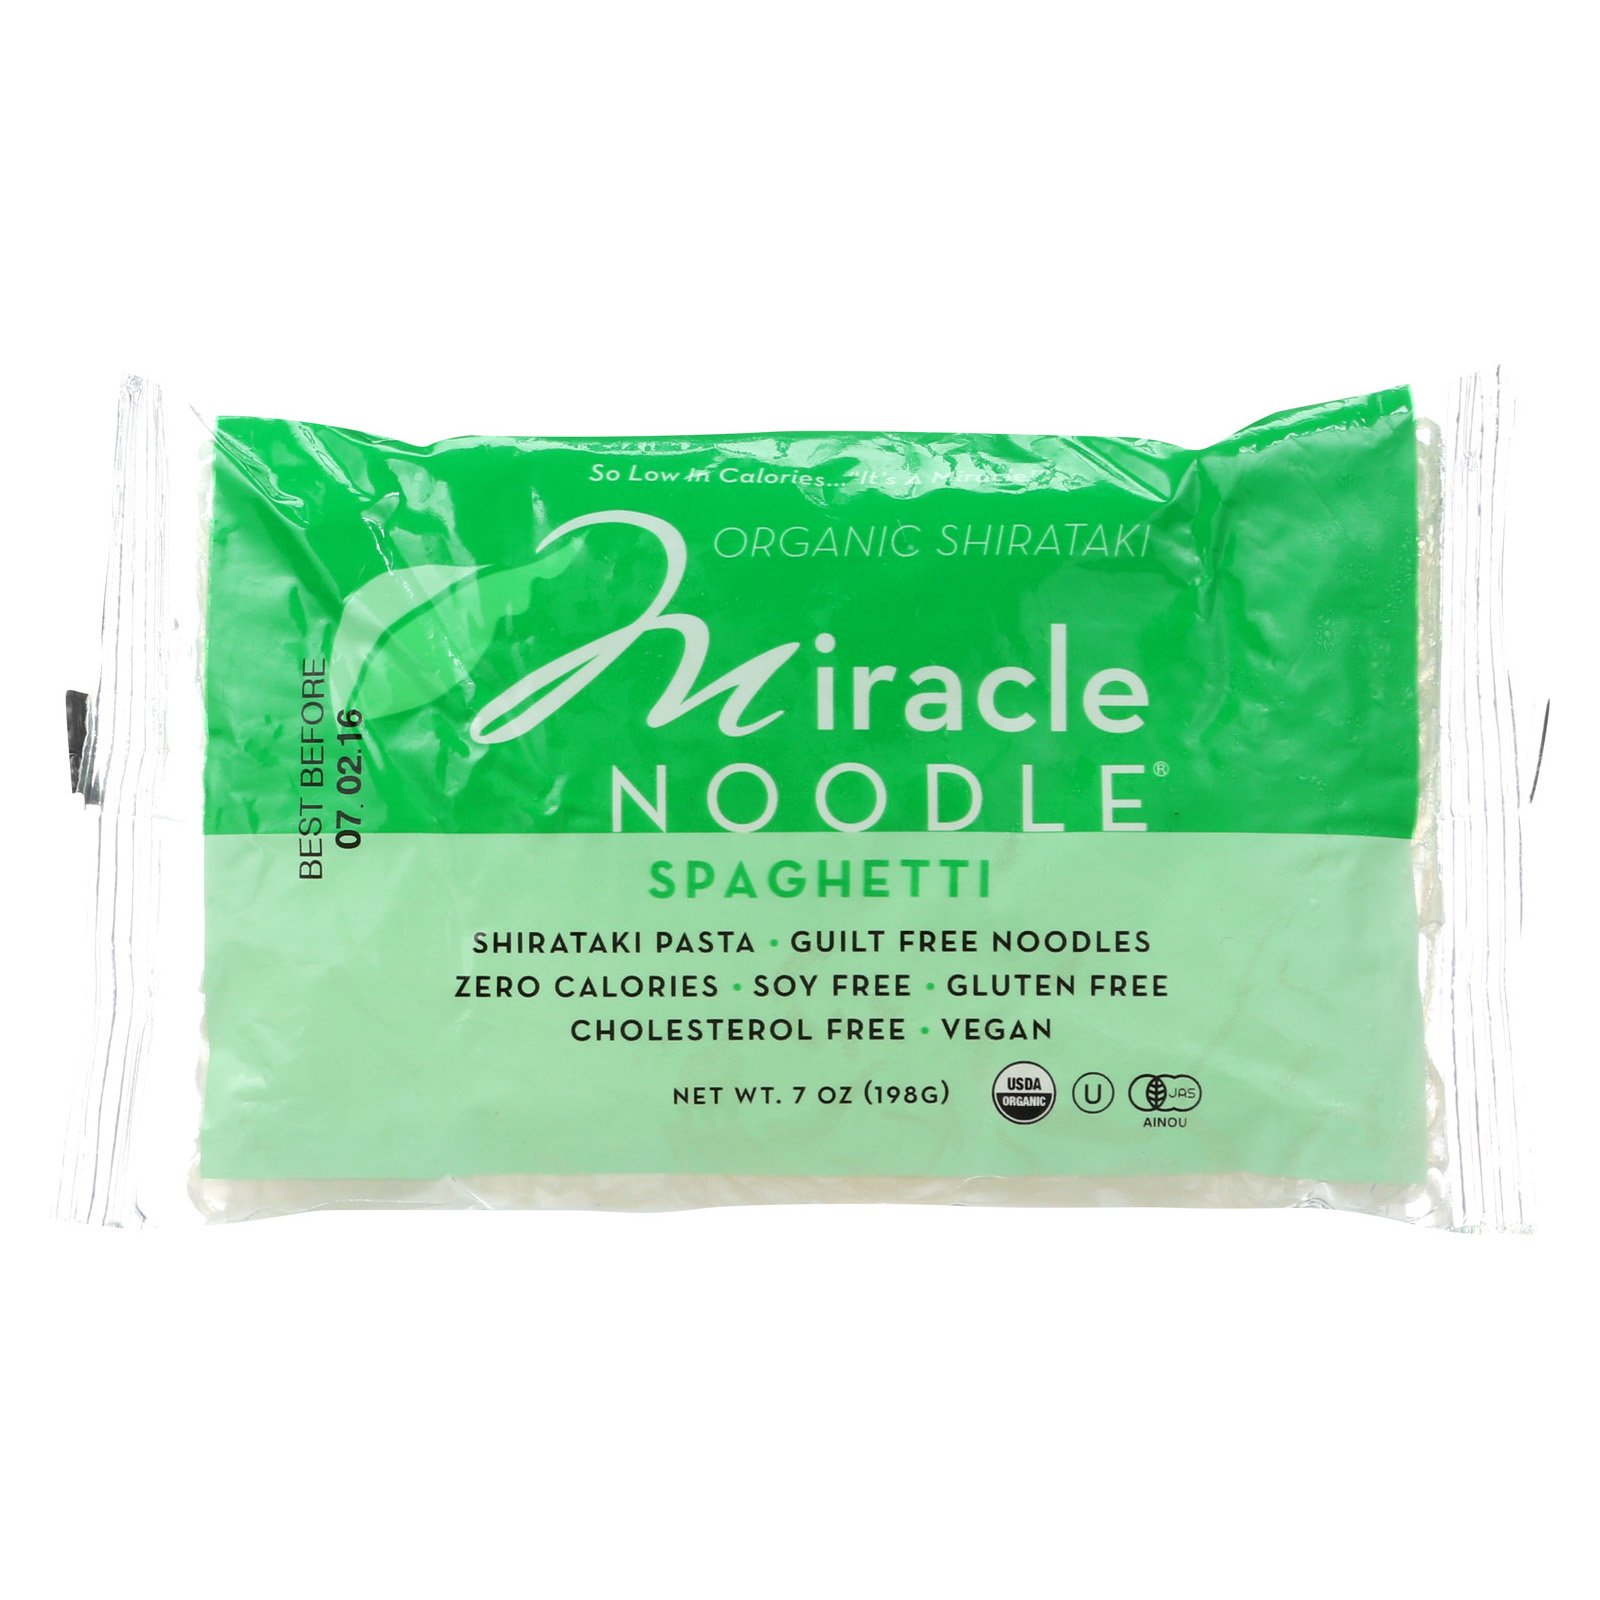 Miracle Noodle Shirataki Pasta - Organic Spaghetti - Case of 6 - 7 oz. by Miracle Noodle